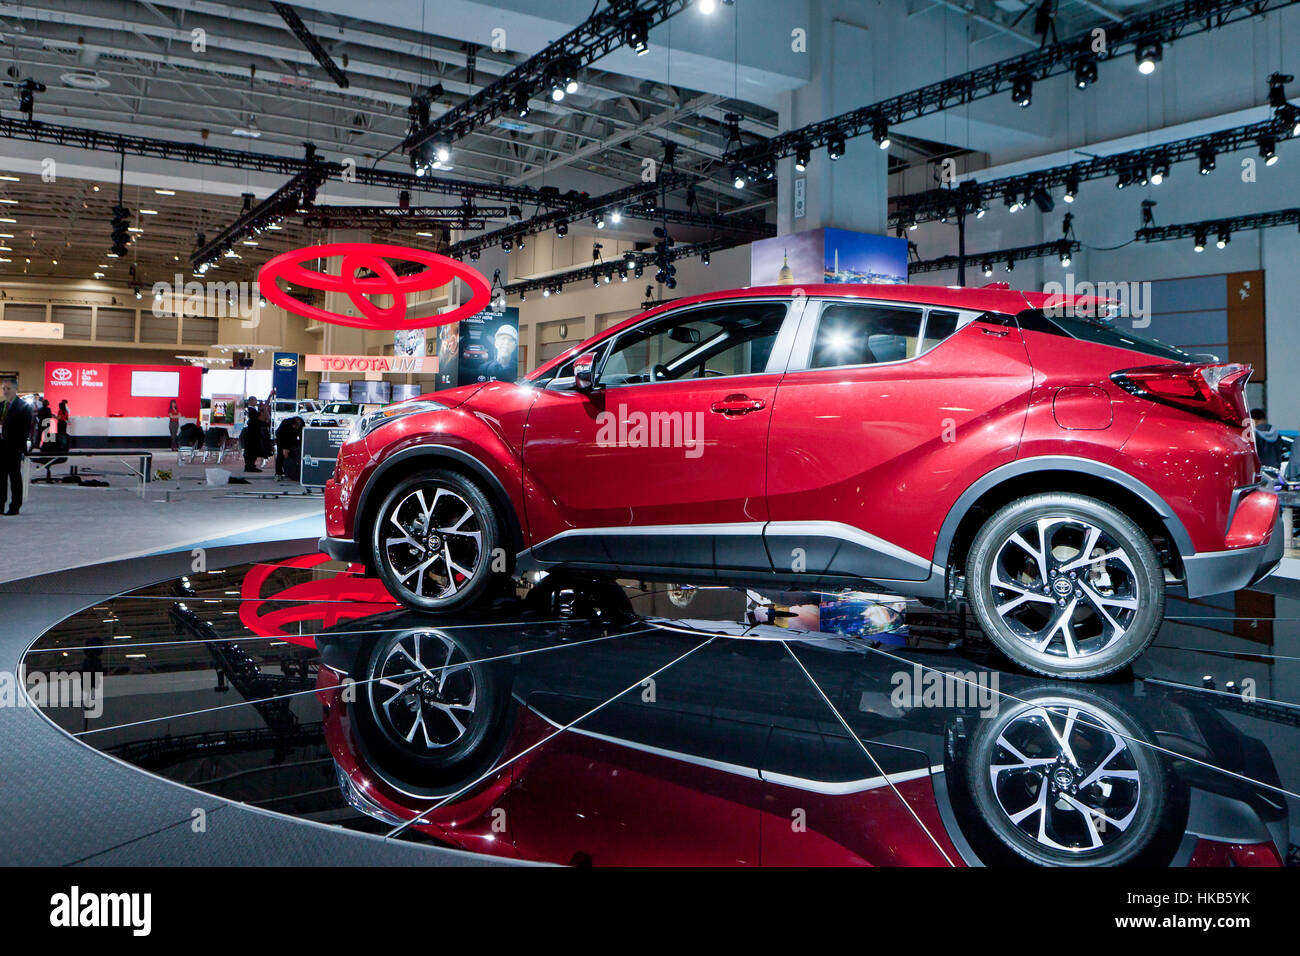 Toyota Chr Stock Photos Amp Toyota Chr Stock Images Alamy